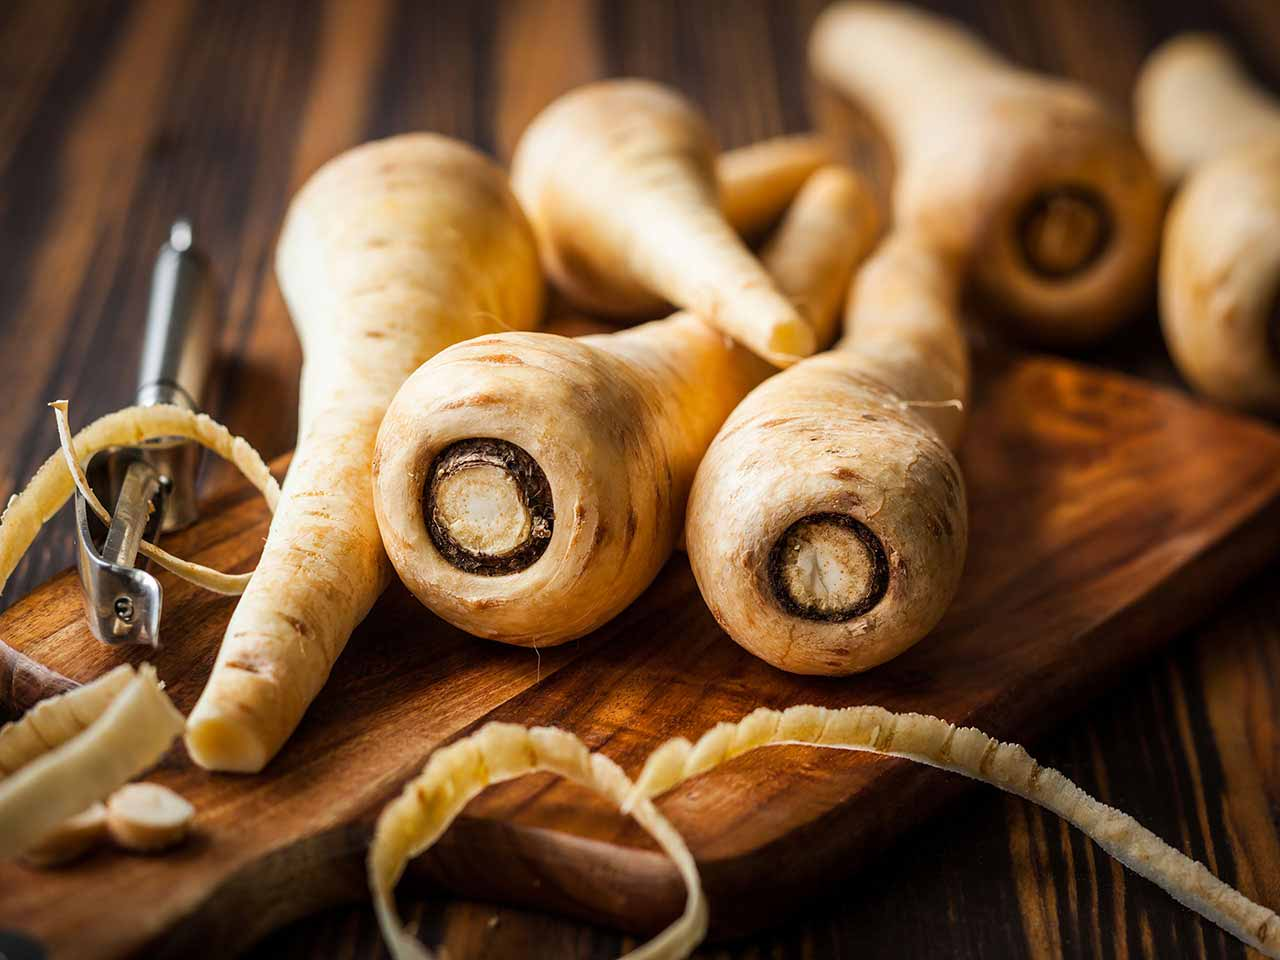 Raw parsnips on chopping board